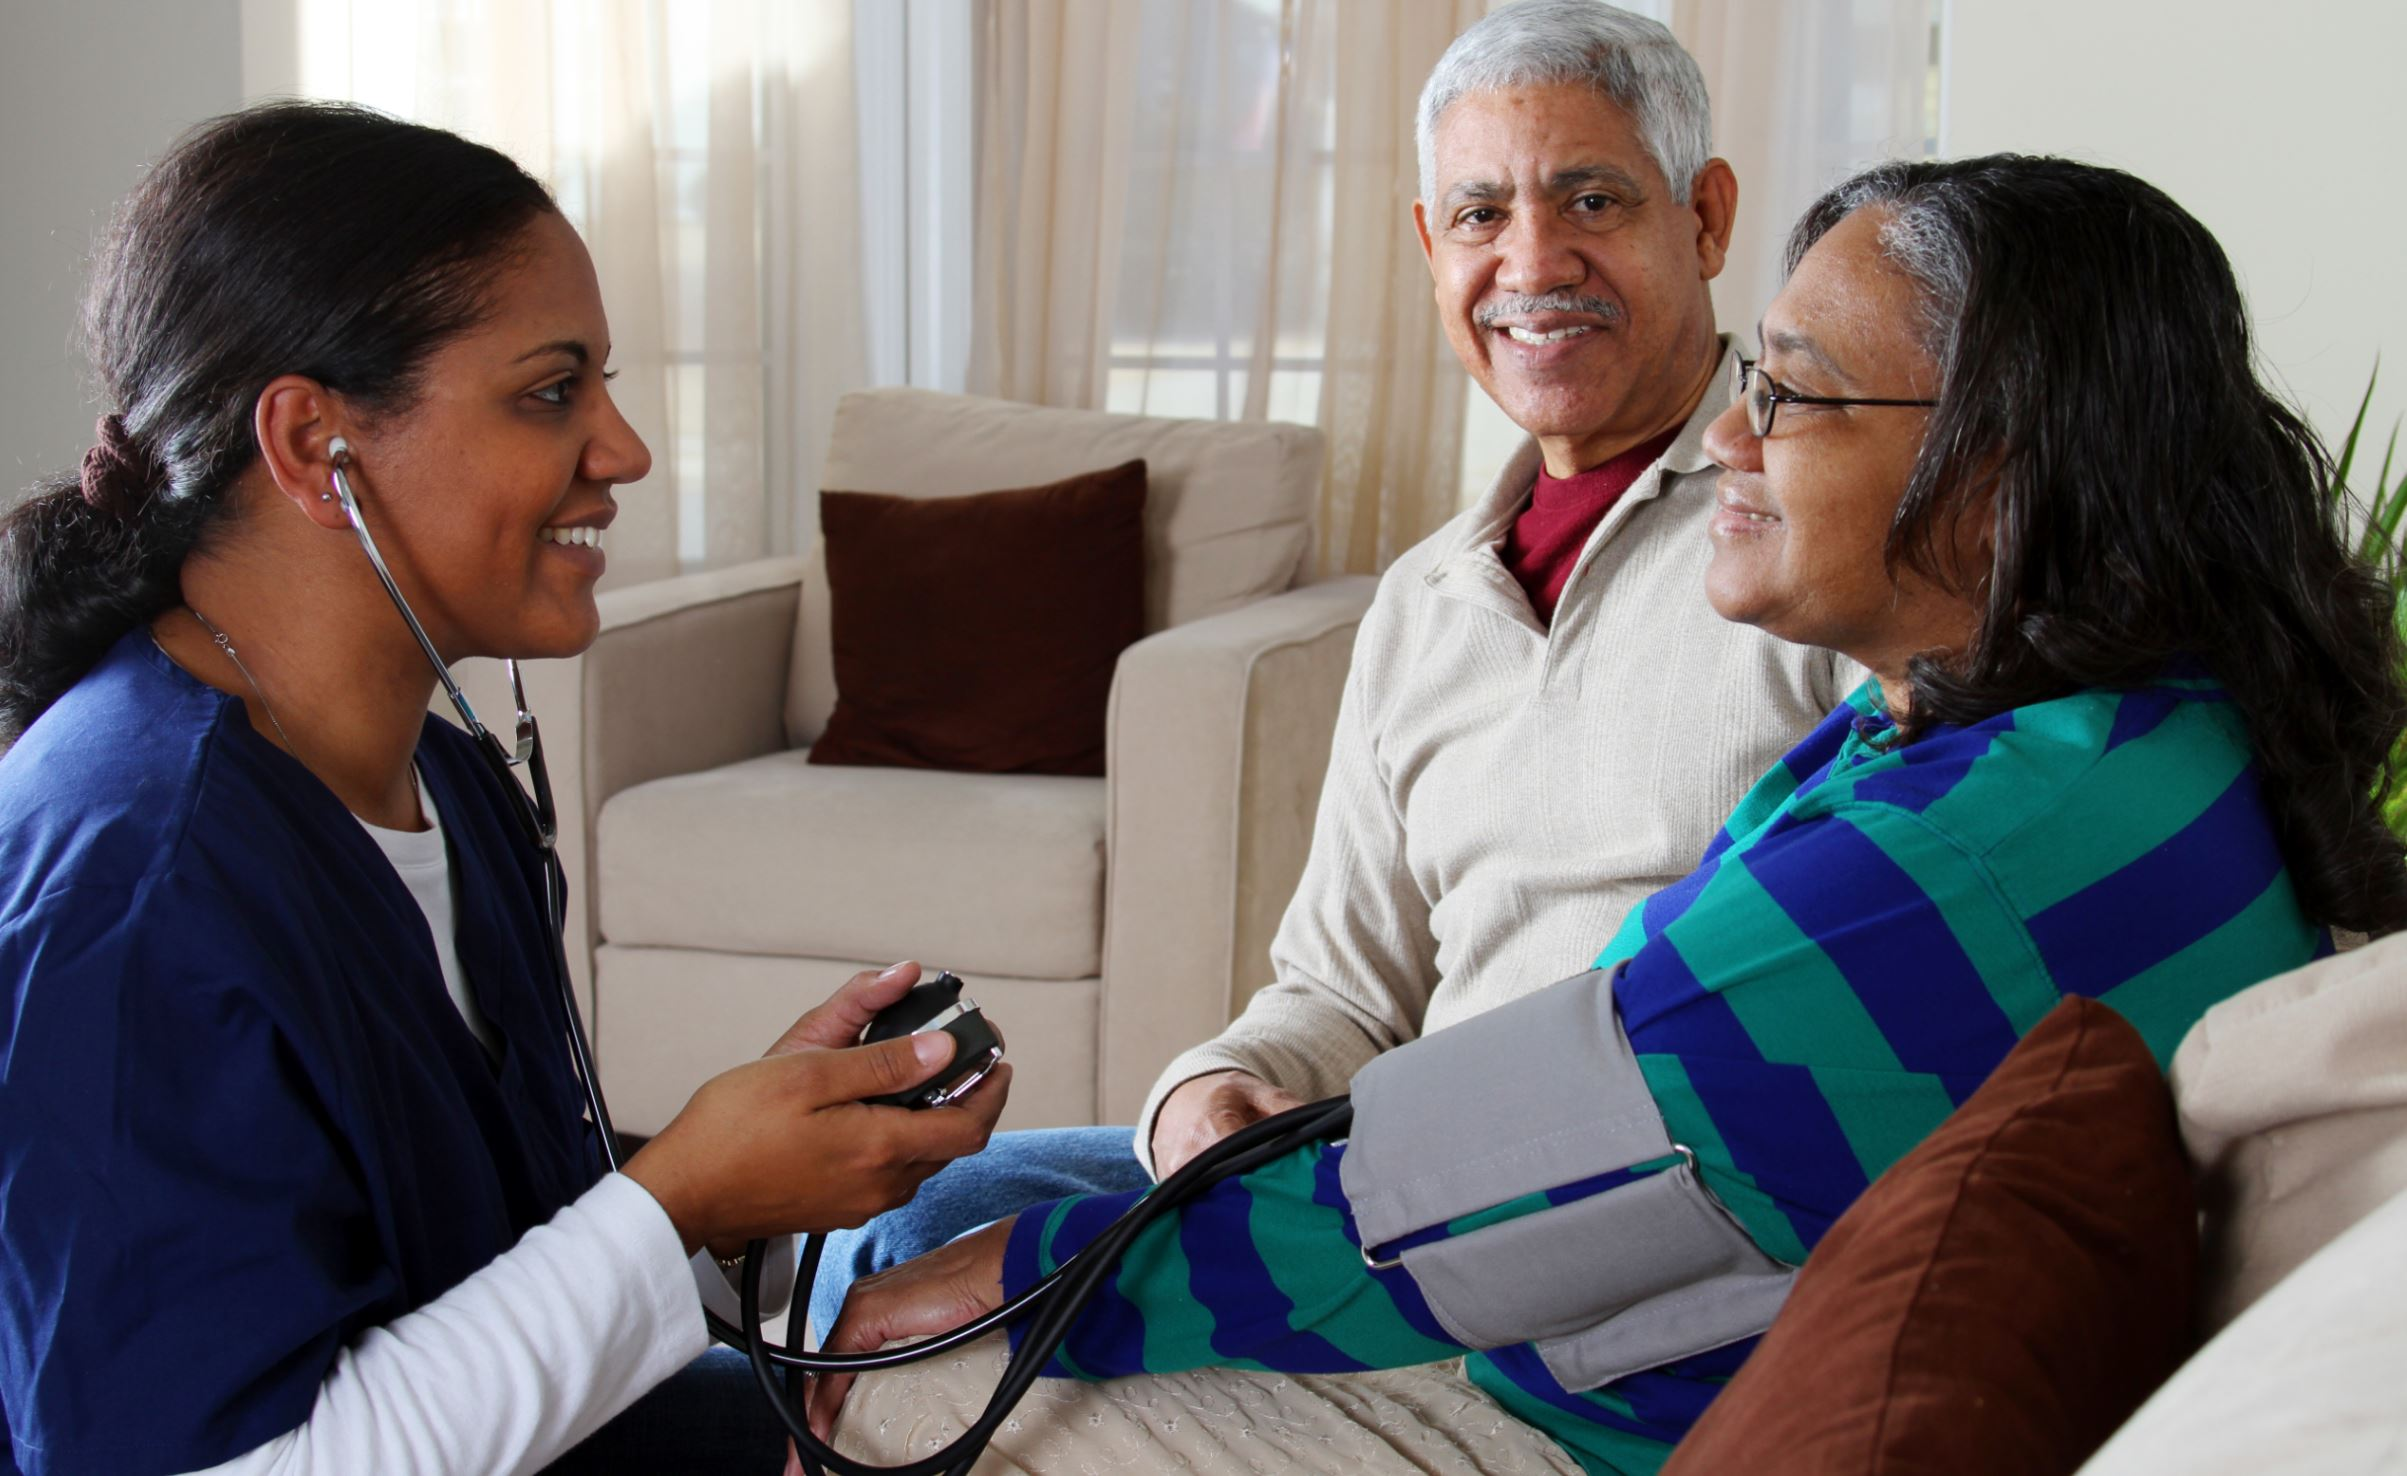 Home Health Care in Missouri: Meeting an Important Need